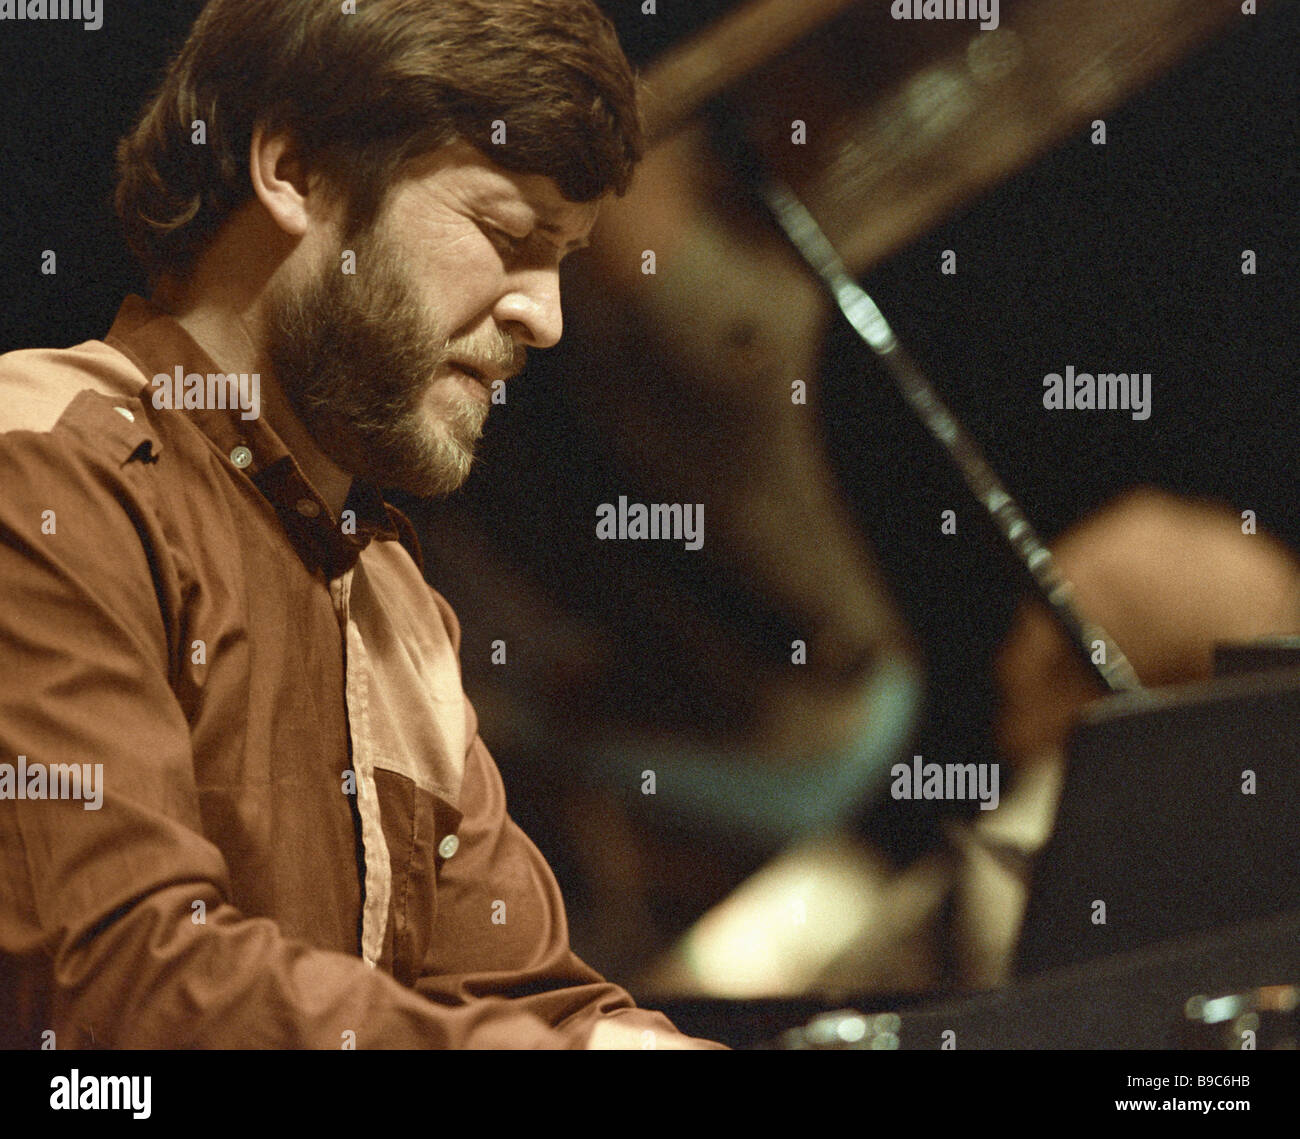 Member of the Vollu Veske band Sven Kullerkupp playing piano - Stock Image